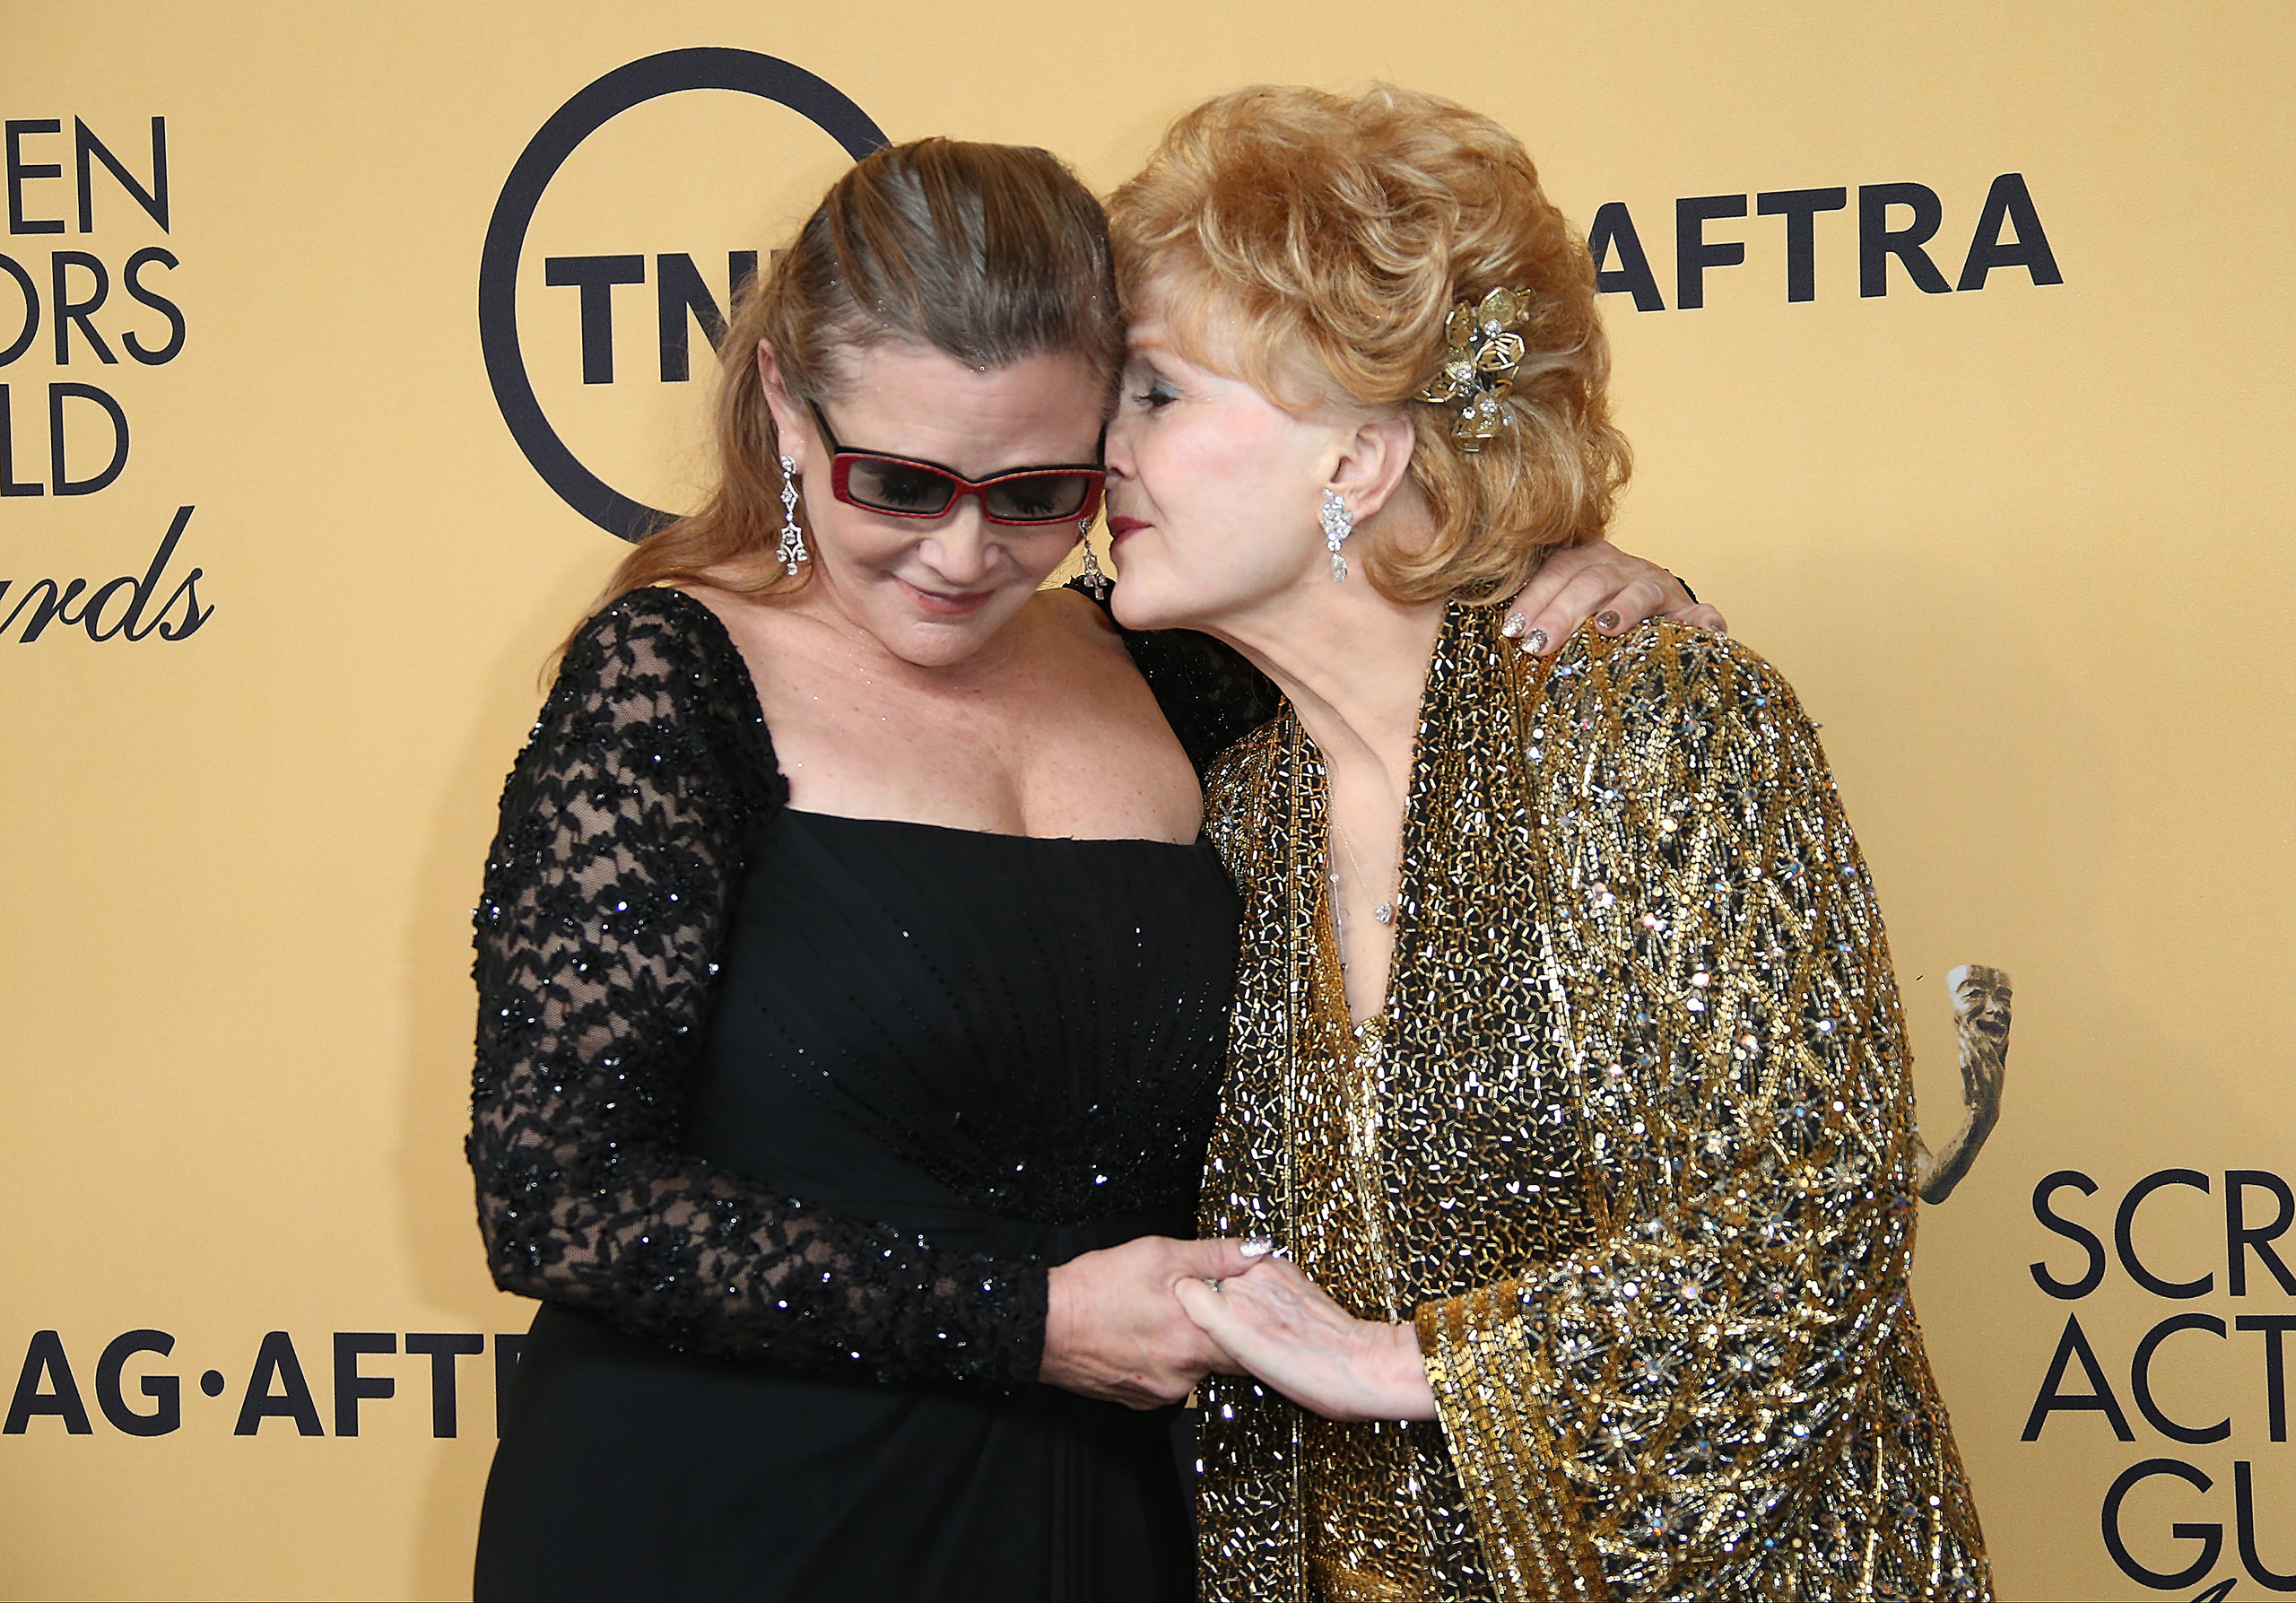 Carrie Fisher and Debbie Reynolds pose in the press room at TNT's 21st Annual Screen Actors Guild Awards at The Shrine Auditorium on Jan. 25, 2015 in Los Angeles.